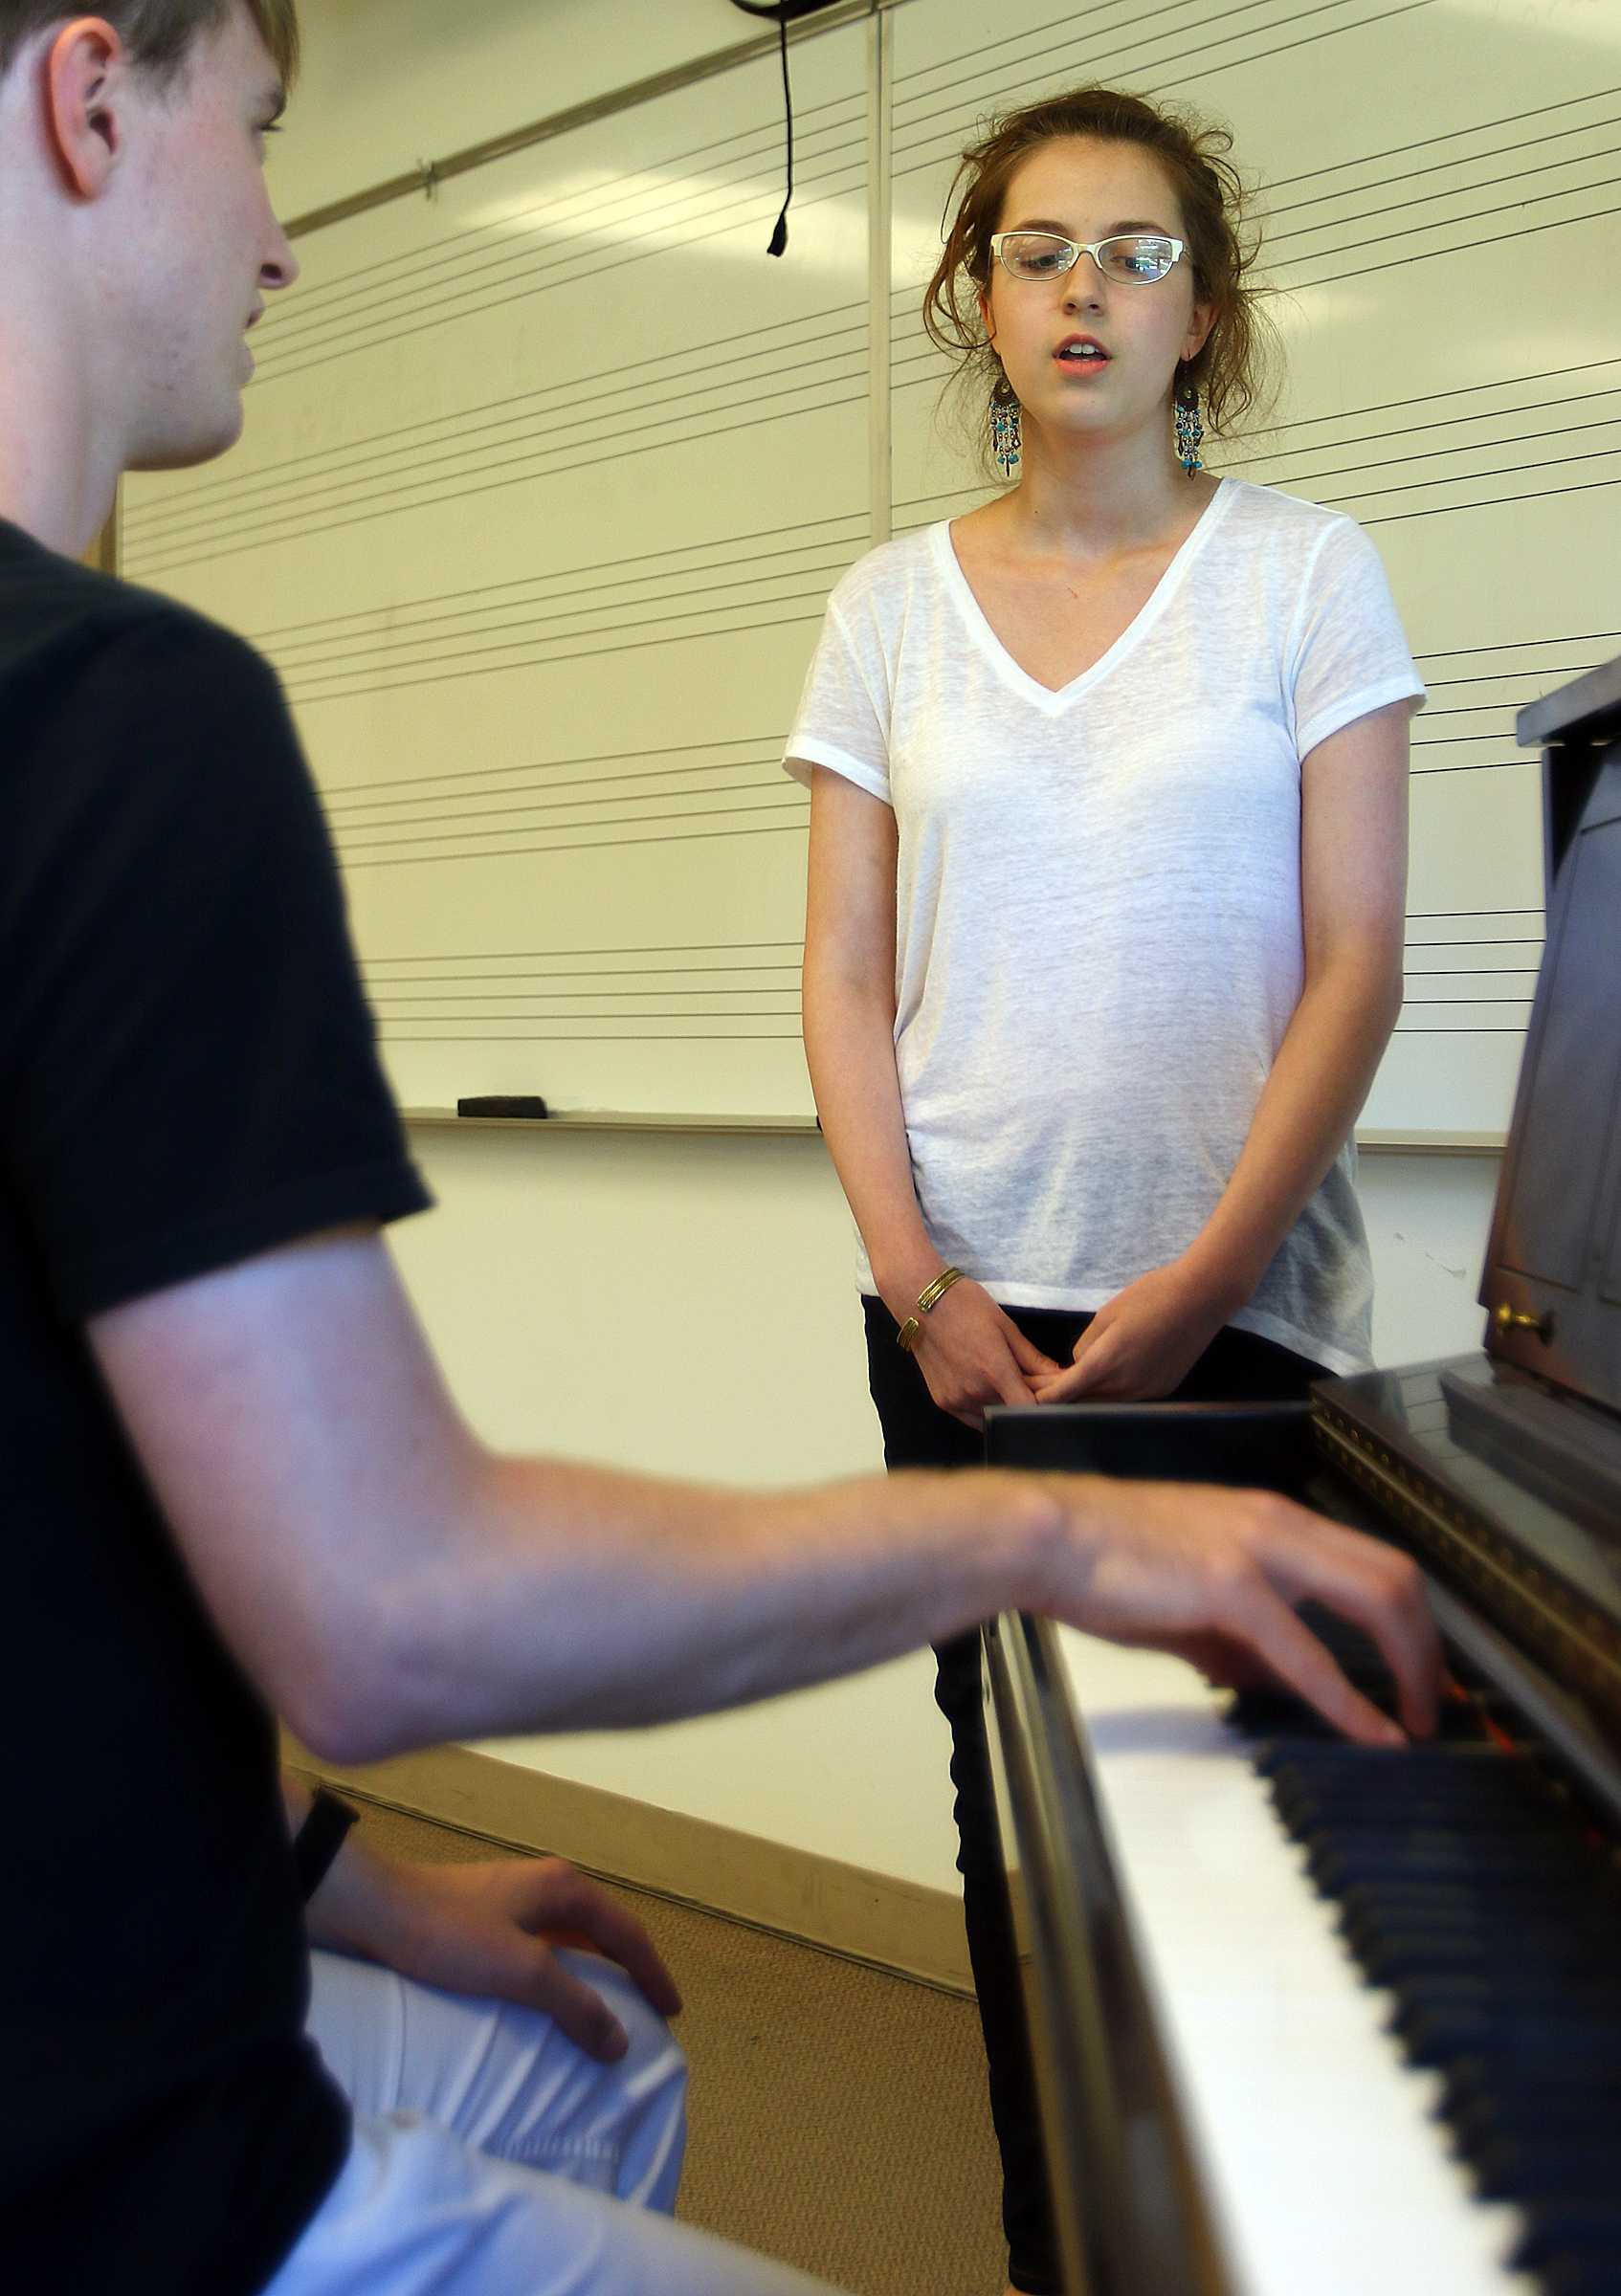 Michael Mitchell, a sophomore in piano performance, performs a scales exercise during an audition for Infared, the U's acapella group, in Libby Gardner Hall, Friday, August 28, 2015.